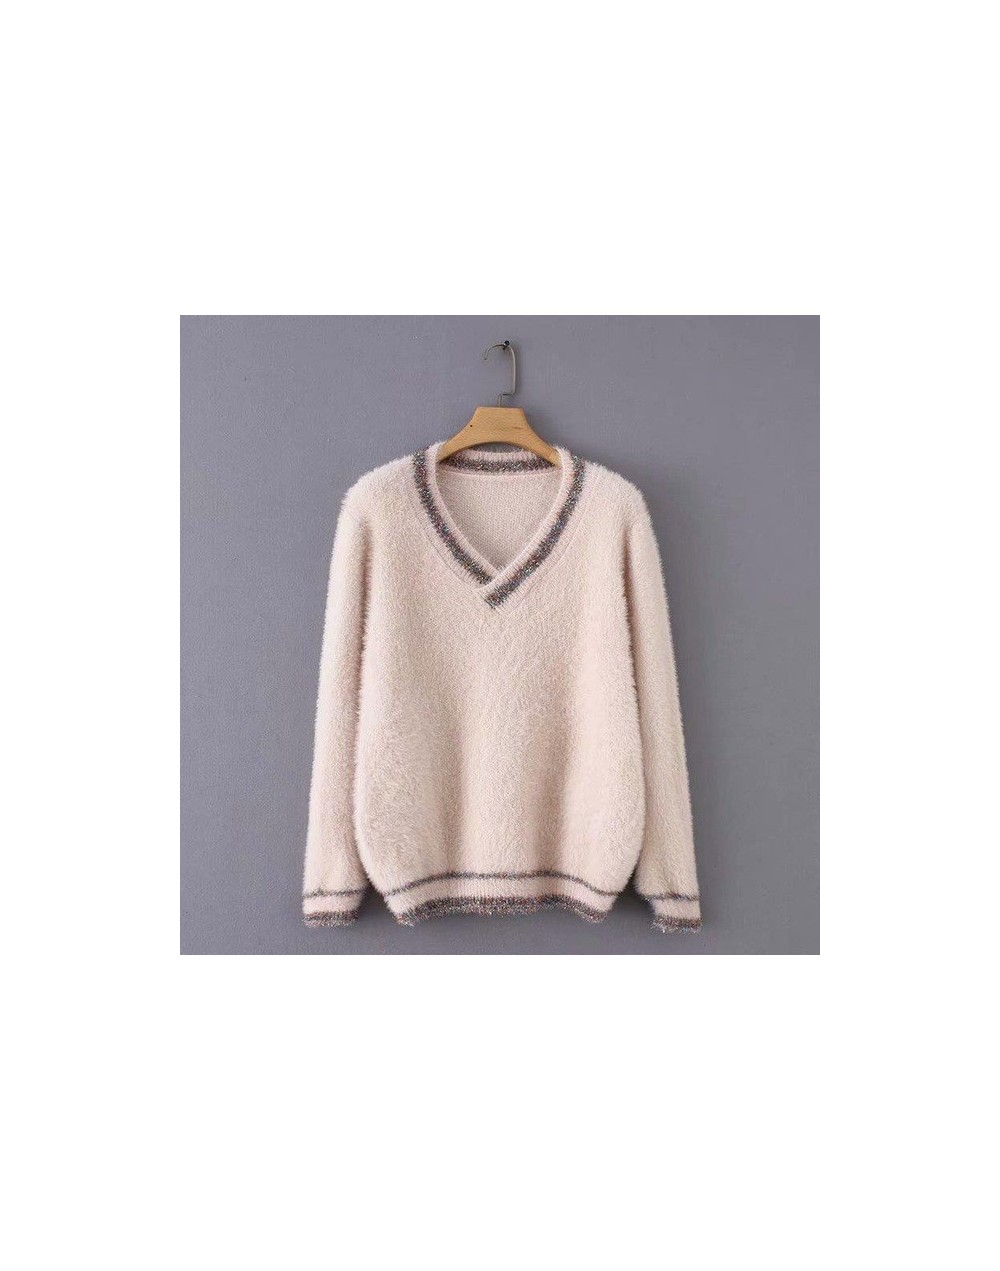 2019 New Women Vintage Kinitted Fake Mink Cashmere Sweaters Lady Fashion Autumn Winter Warm V-neck Short Soft Mohair Pullove...